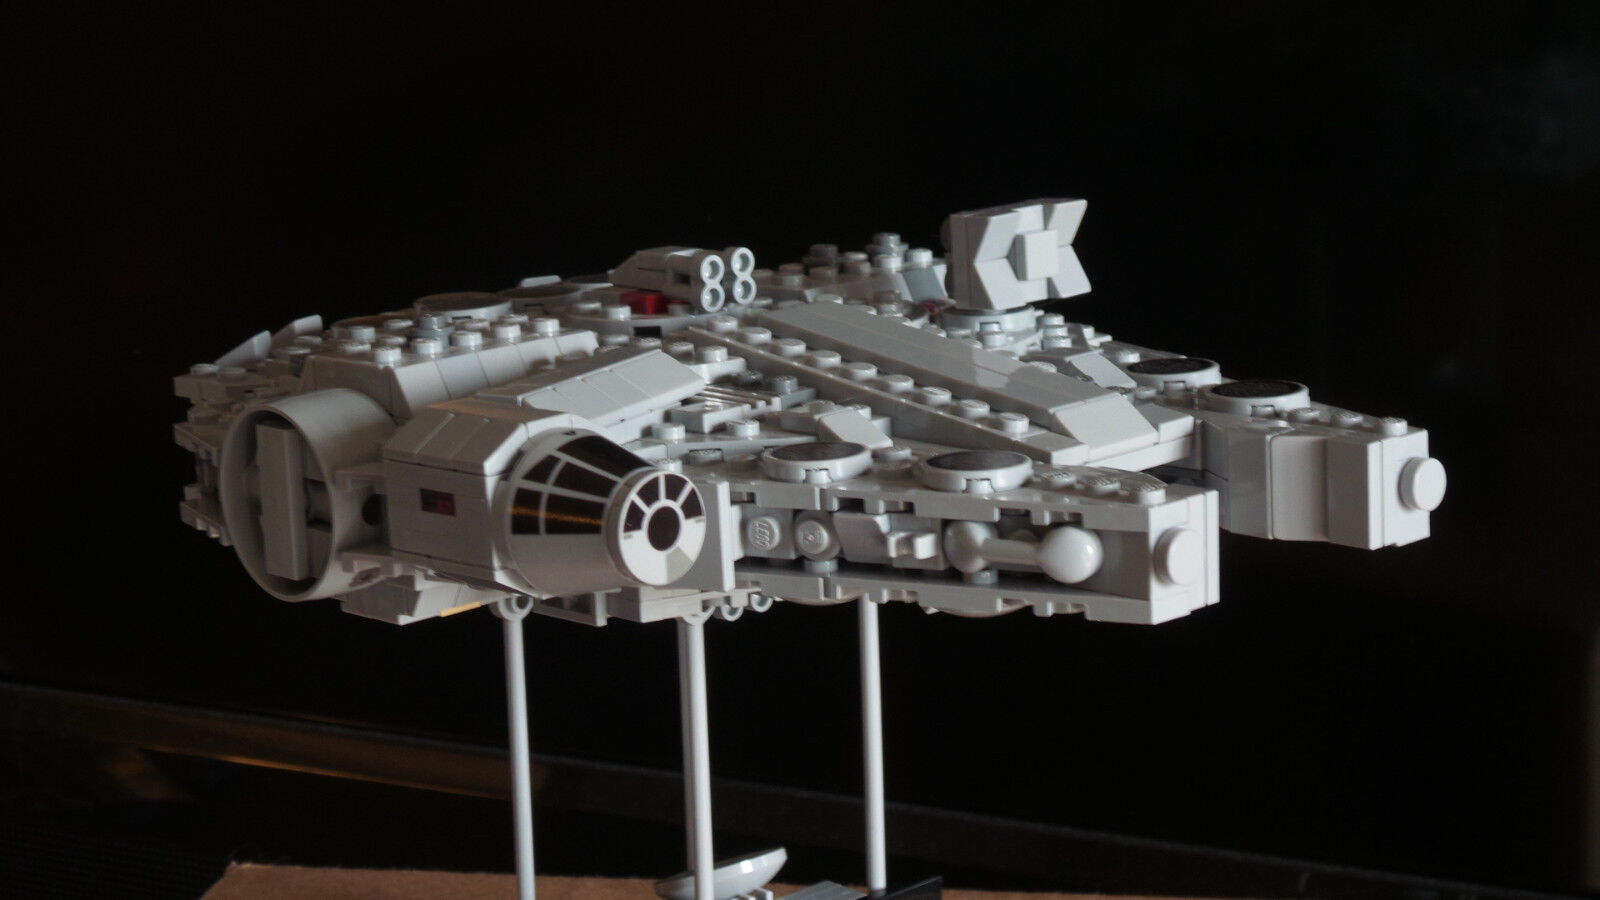 Lego Star Wars Millennium Falcon Episode VII The Force Awakens Custom